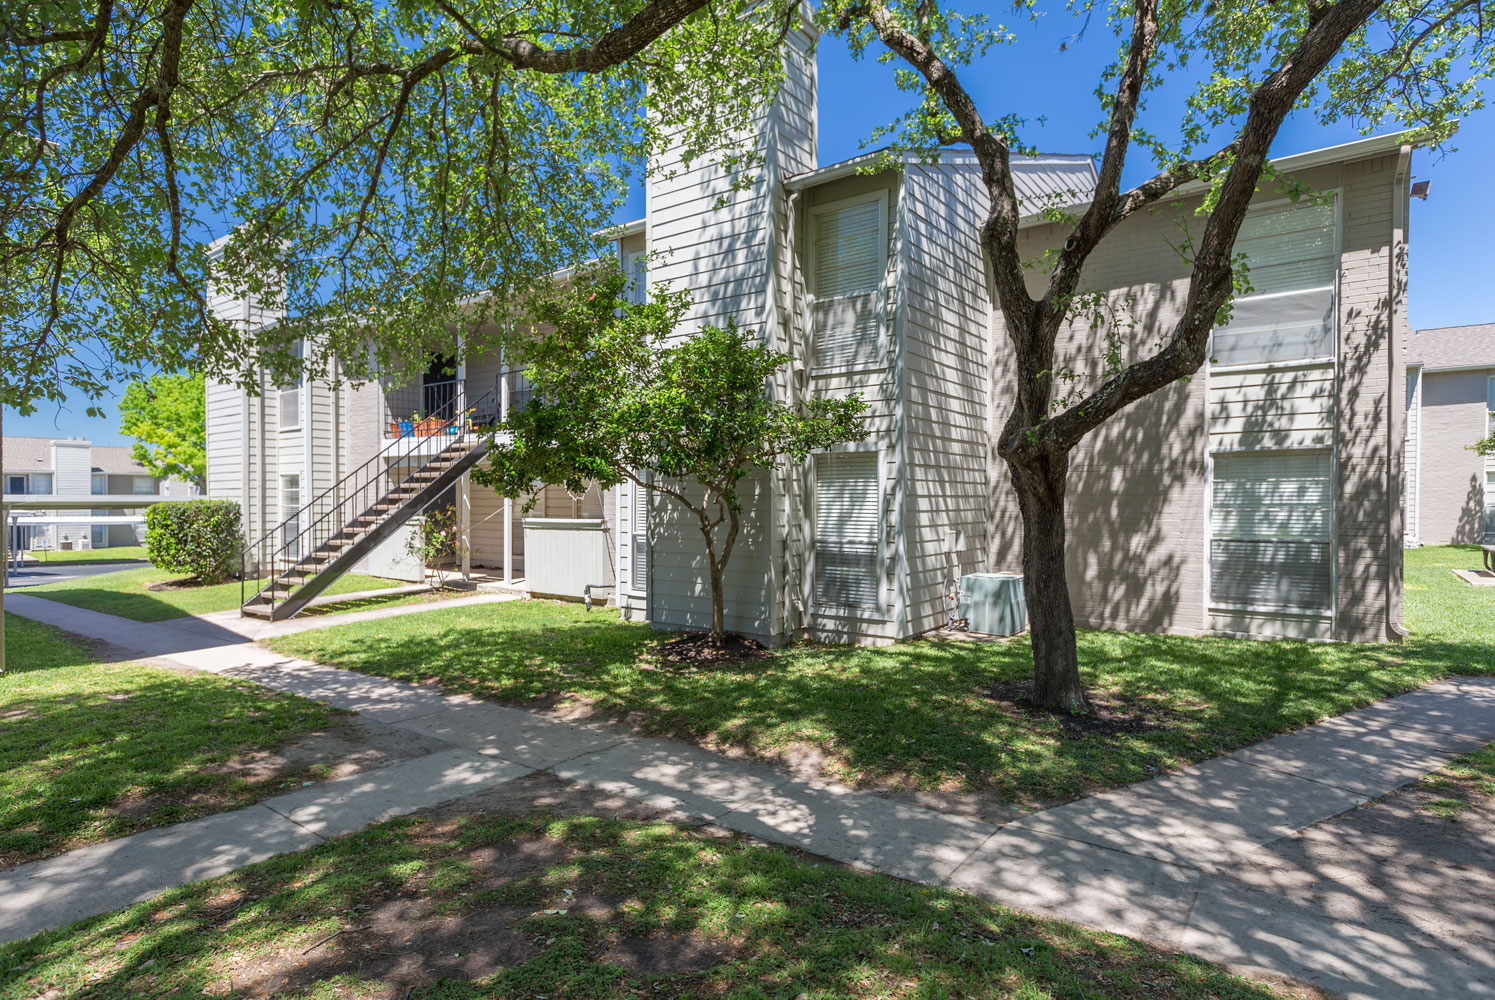 Renters Insurance Available at Sapphire Apartments in San Antonio, Texas